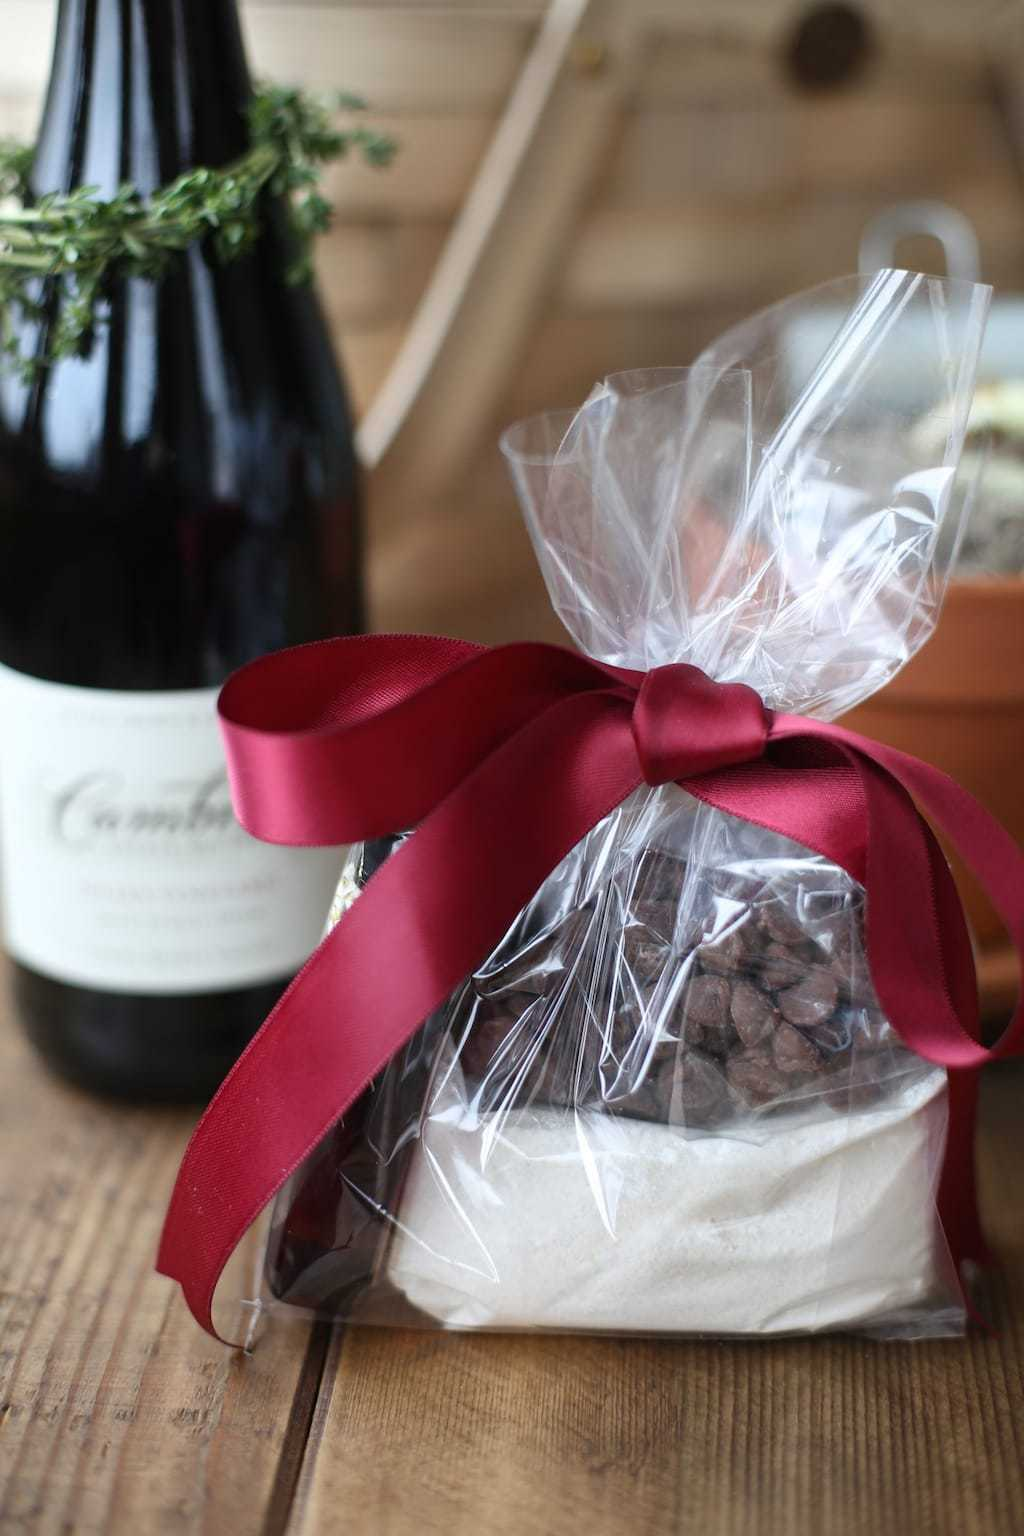 Molten lava cake mix wrapped in cellophane for gifting in a wine and chocolate gift basket.